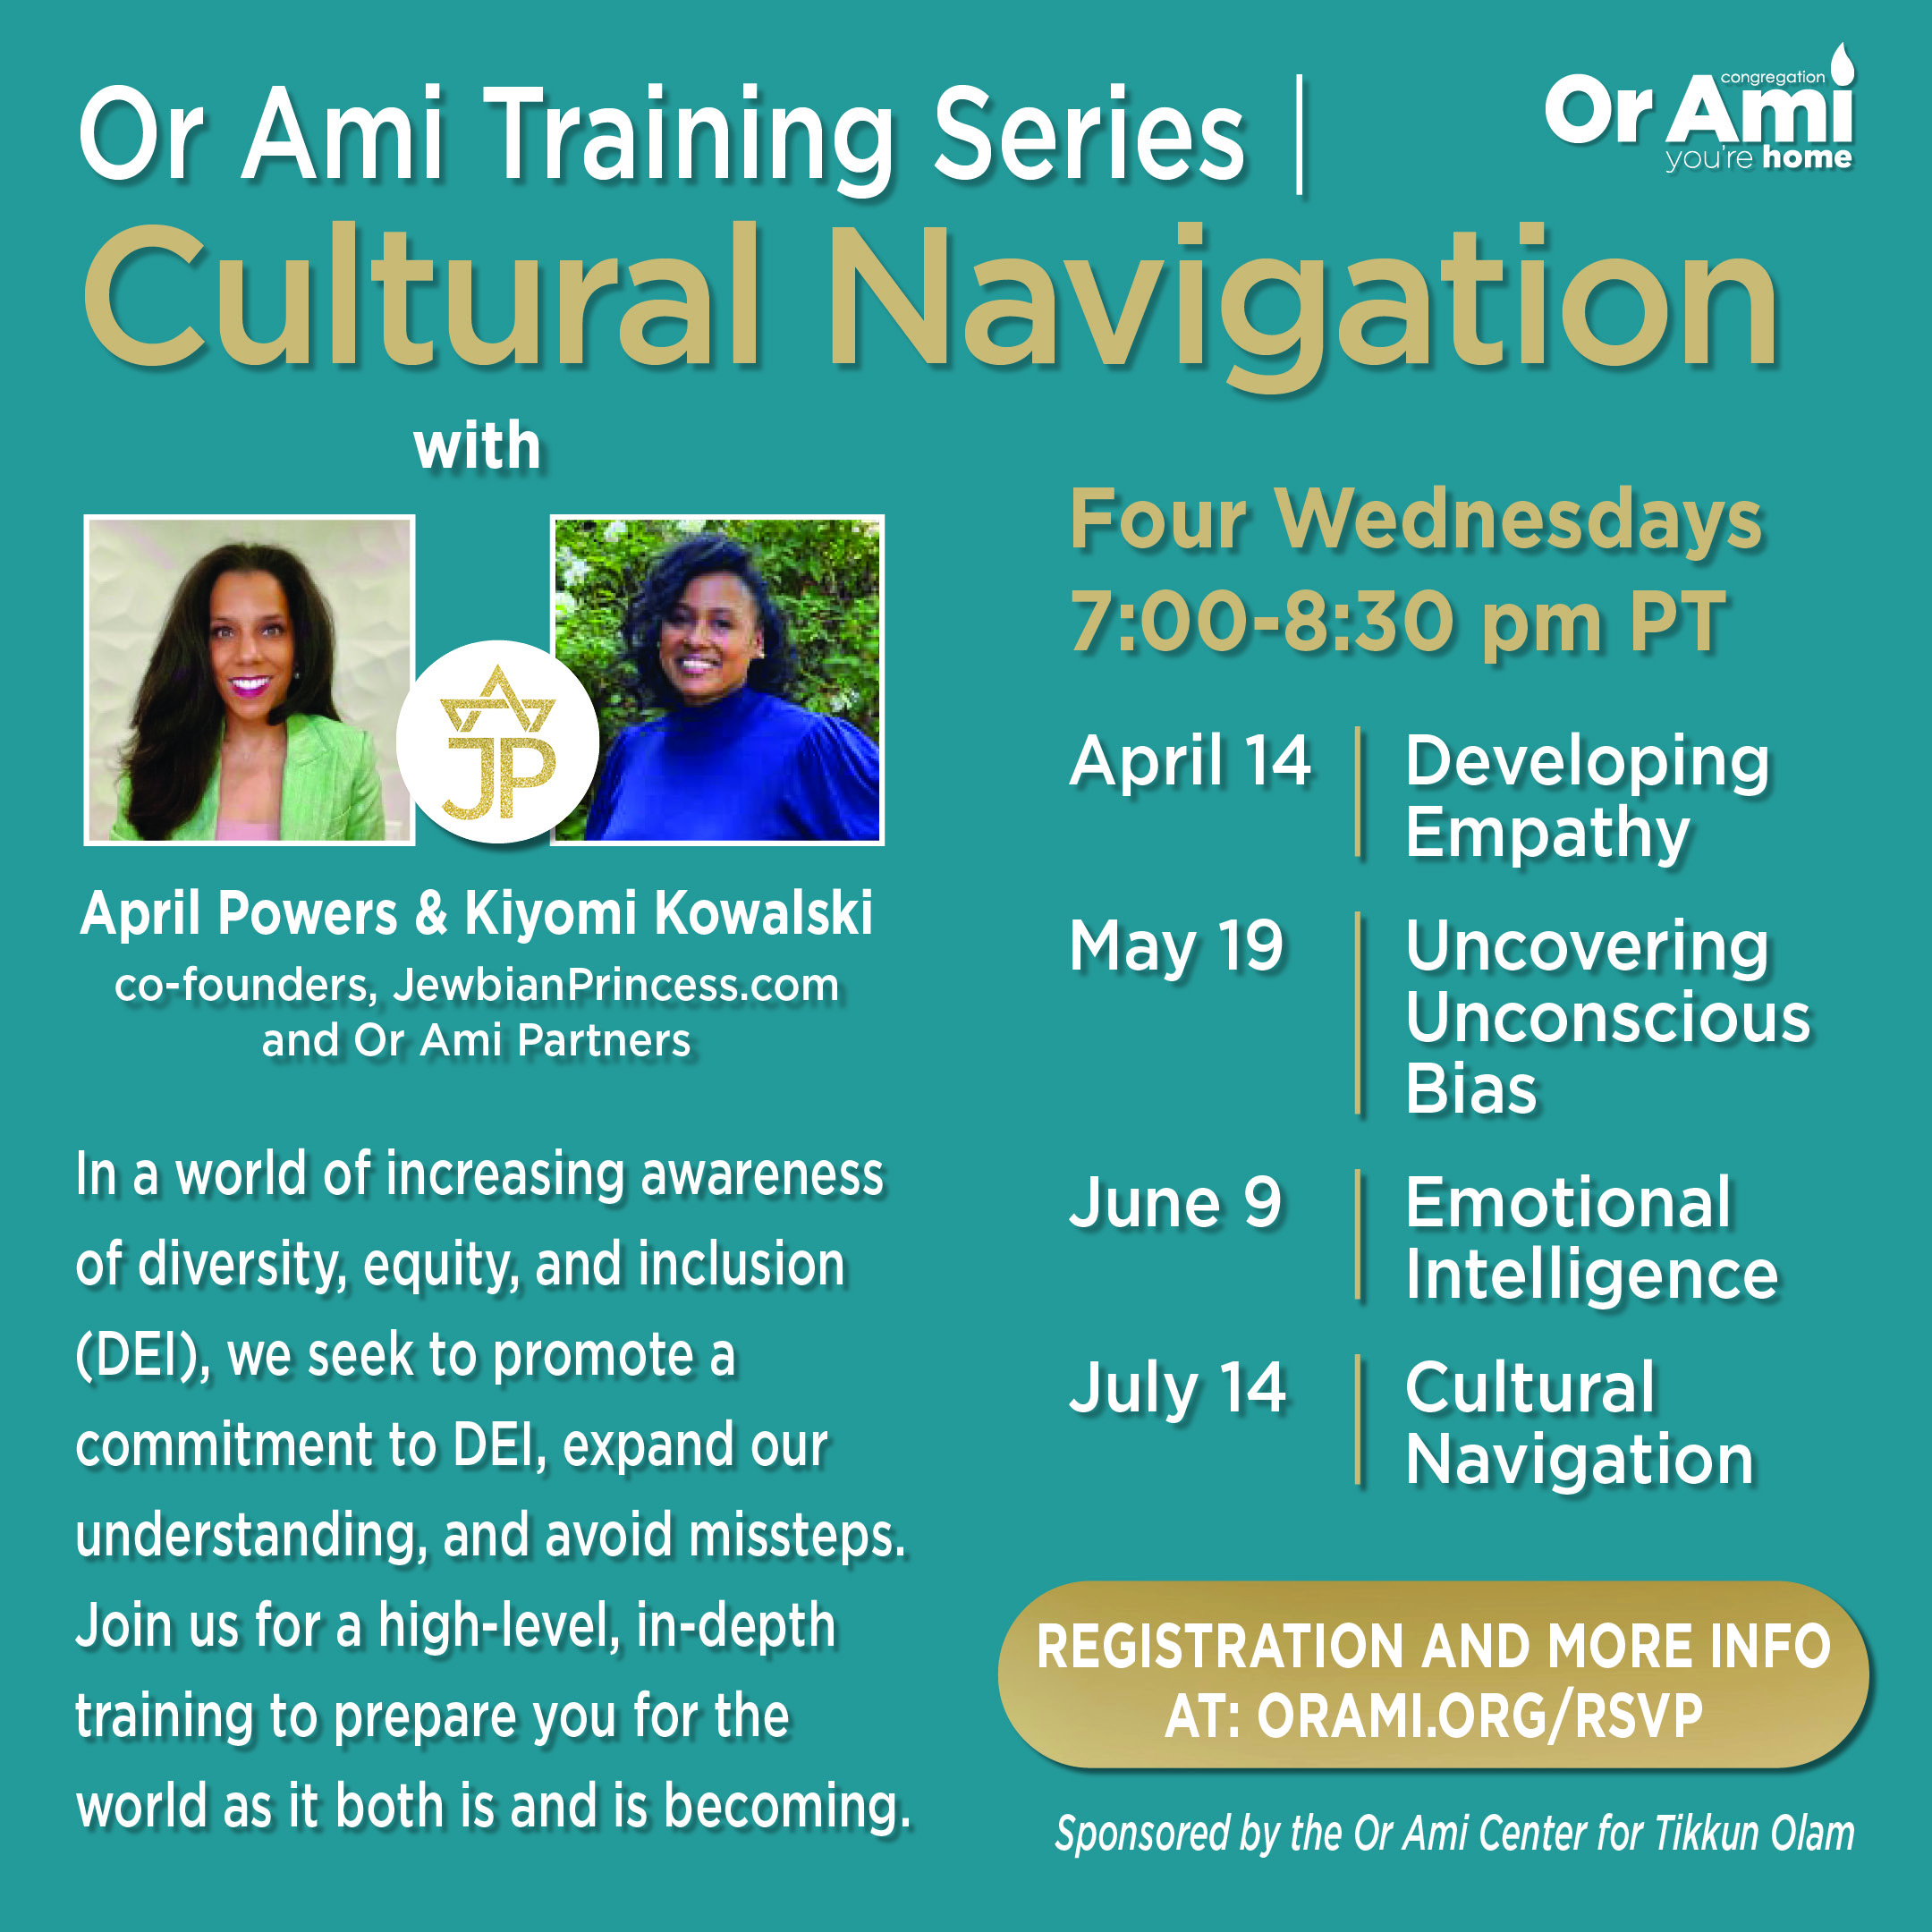 Or Ami Cultural Navigation 2021 with LINK